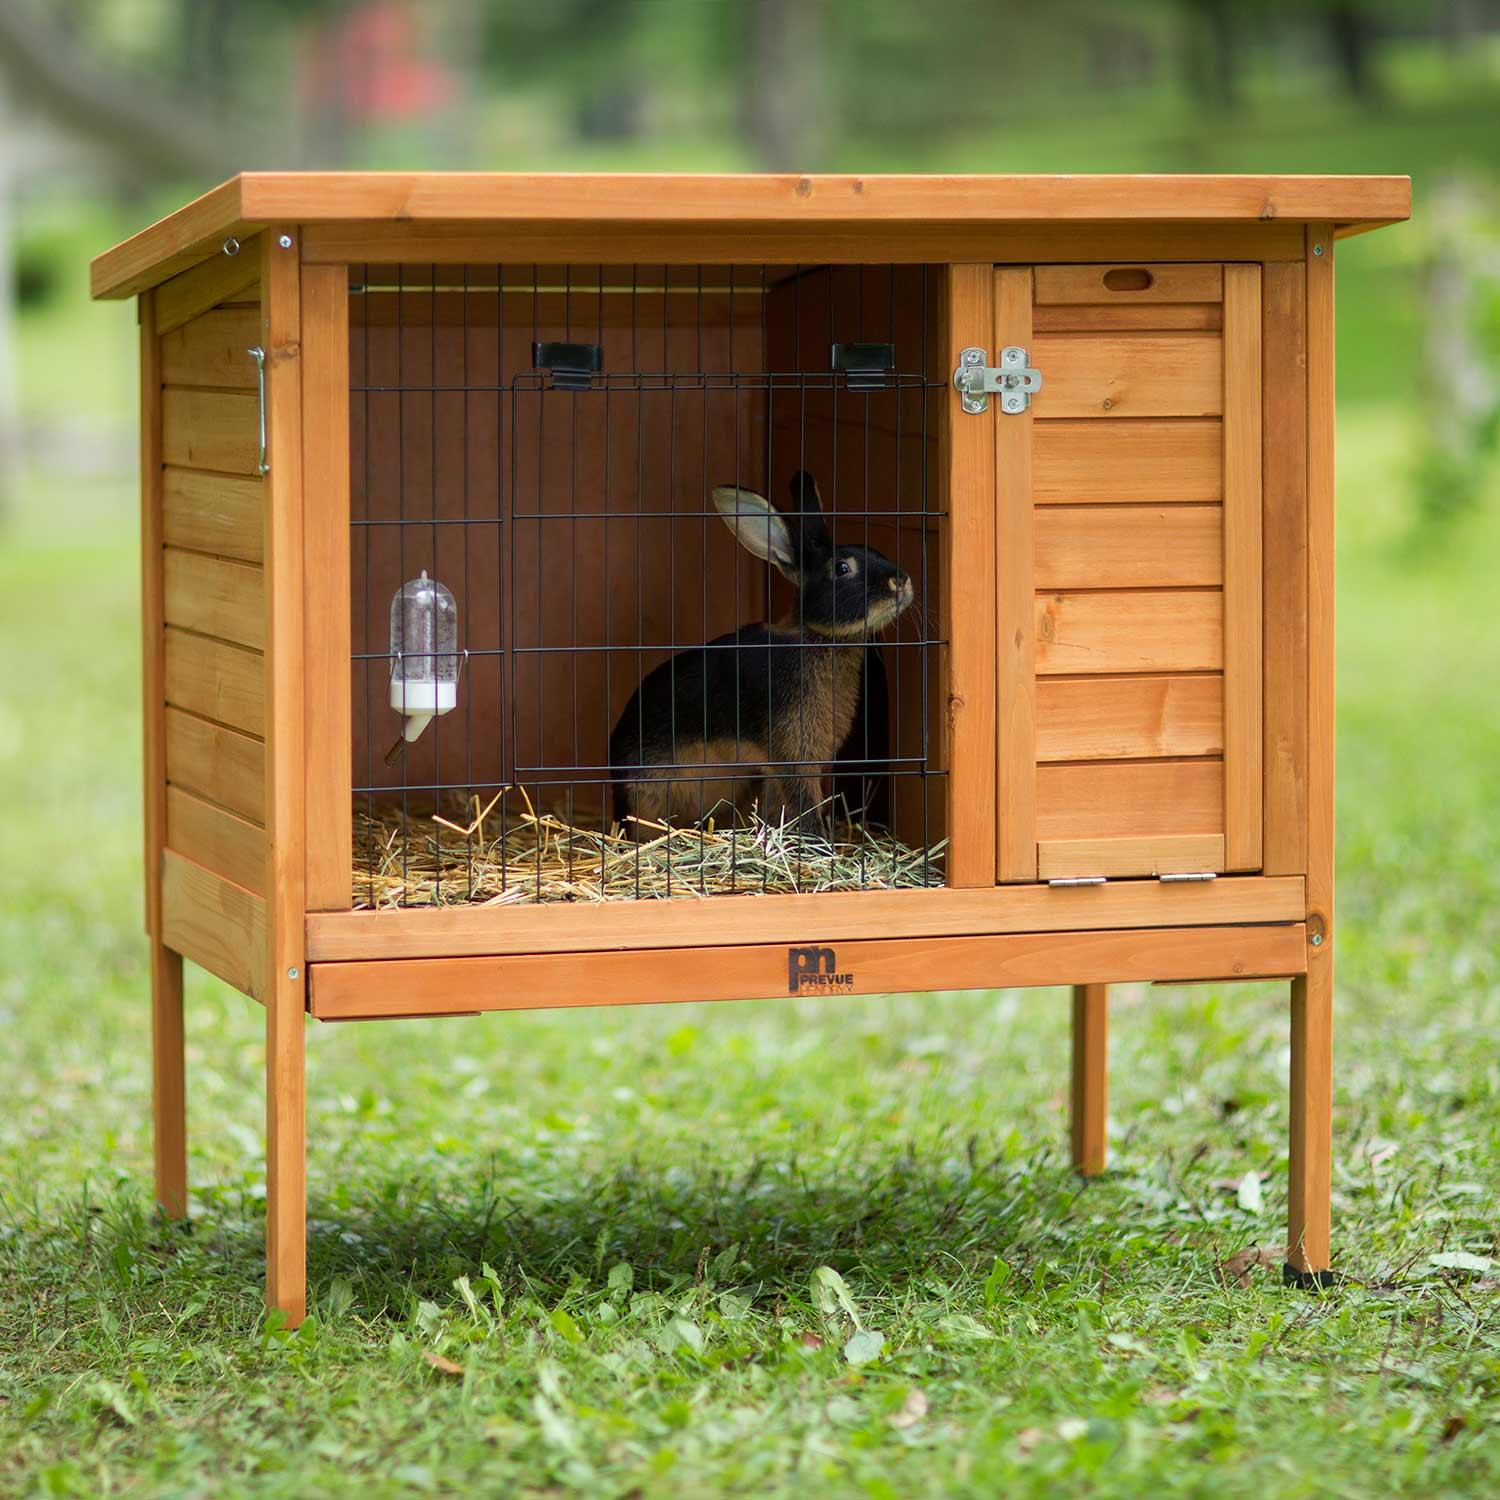 Small Rabbit Hutch 460 Prevue Pet Products